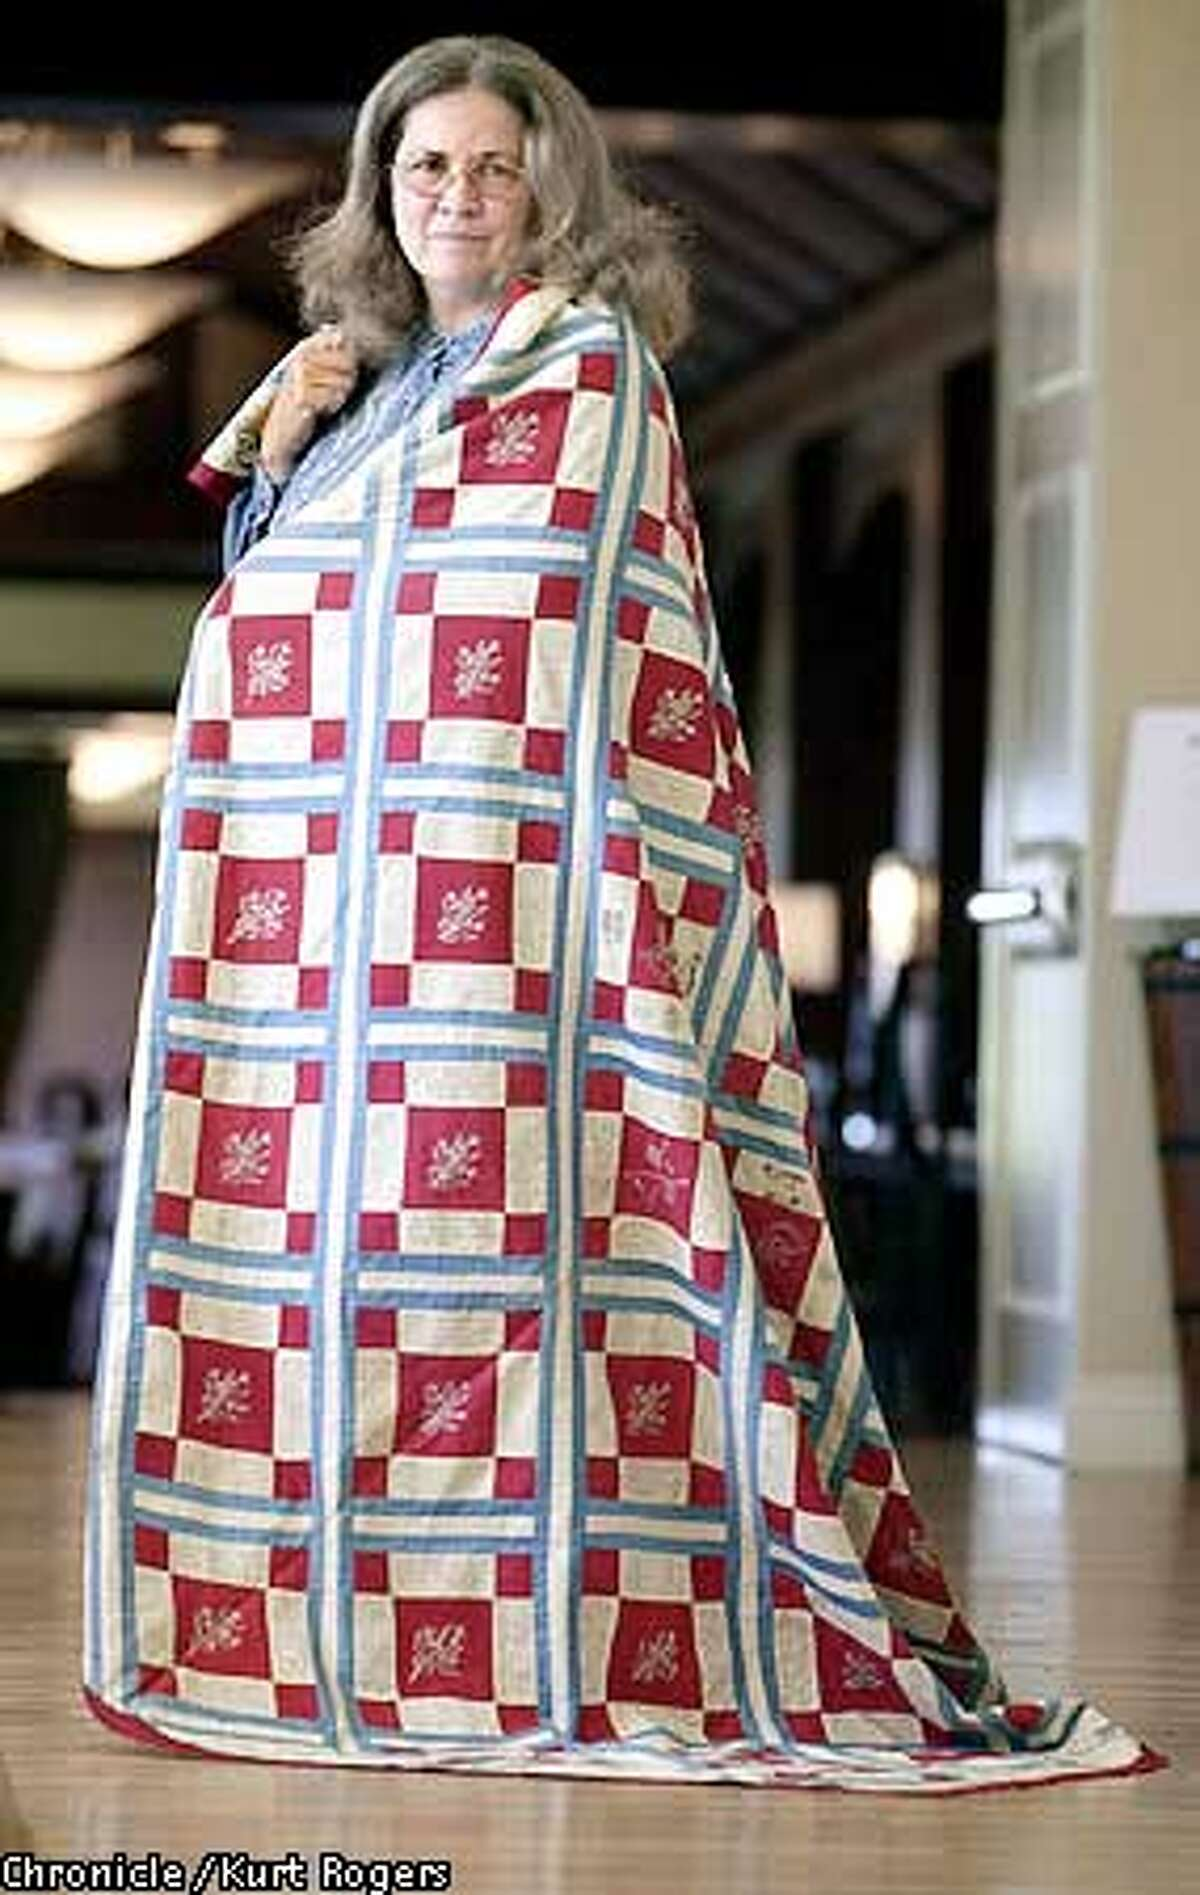 Kris Mason's family has cherished a memento of a different sort: a handmade quilt dating to the U.S. Civil War. This quilt, recently valued at $250,000 by Sotheby's auction house, will be the centerpiece of an All American display at the seaside resort over Fourth of July weekend. The quilt was hand-sewn at the height of the Civil War in 1862; every square features a piece of history including drawings of the 16 presidents-to-date and each of the major Civil War battles .